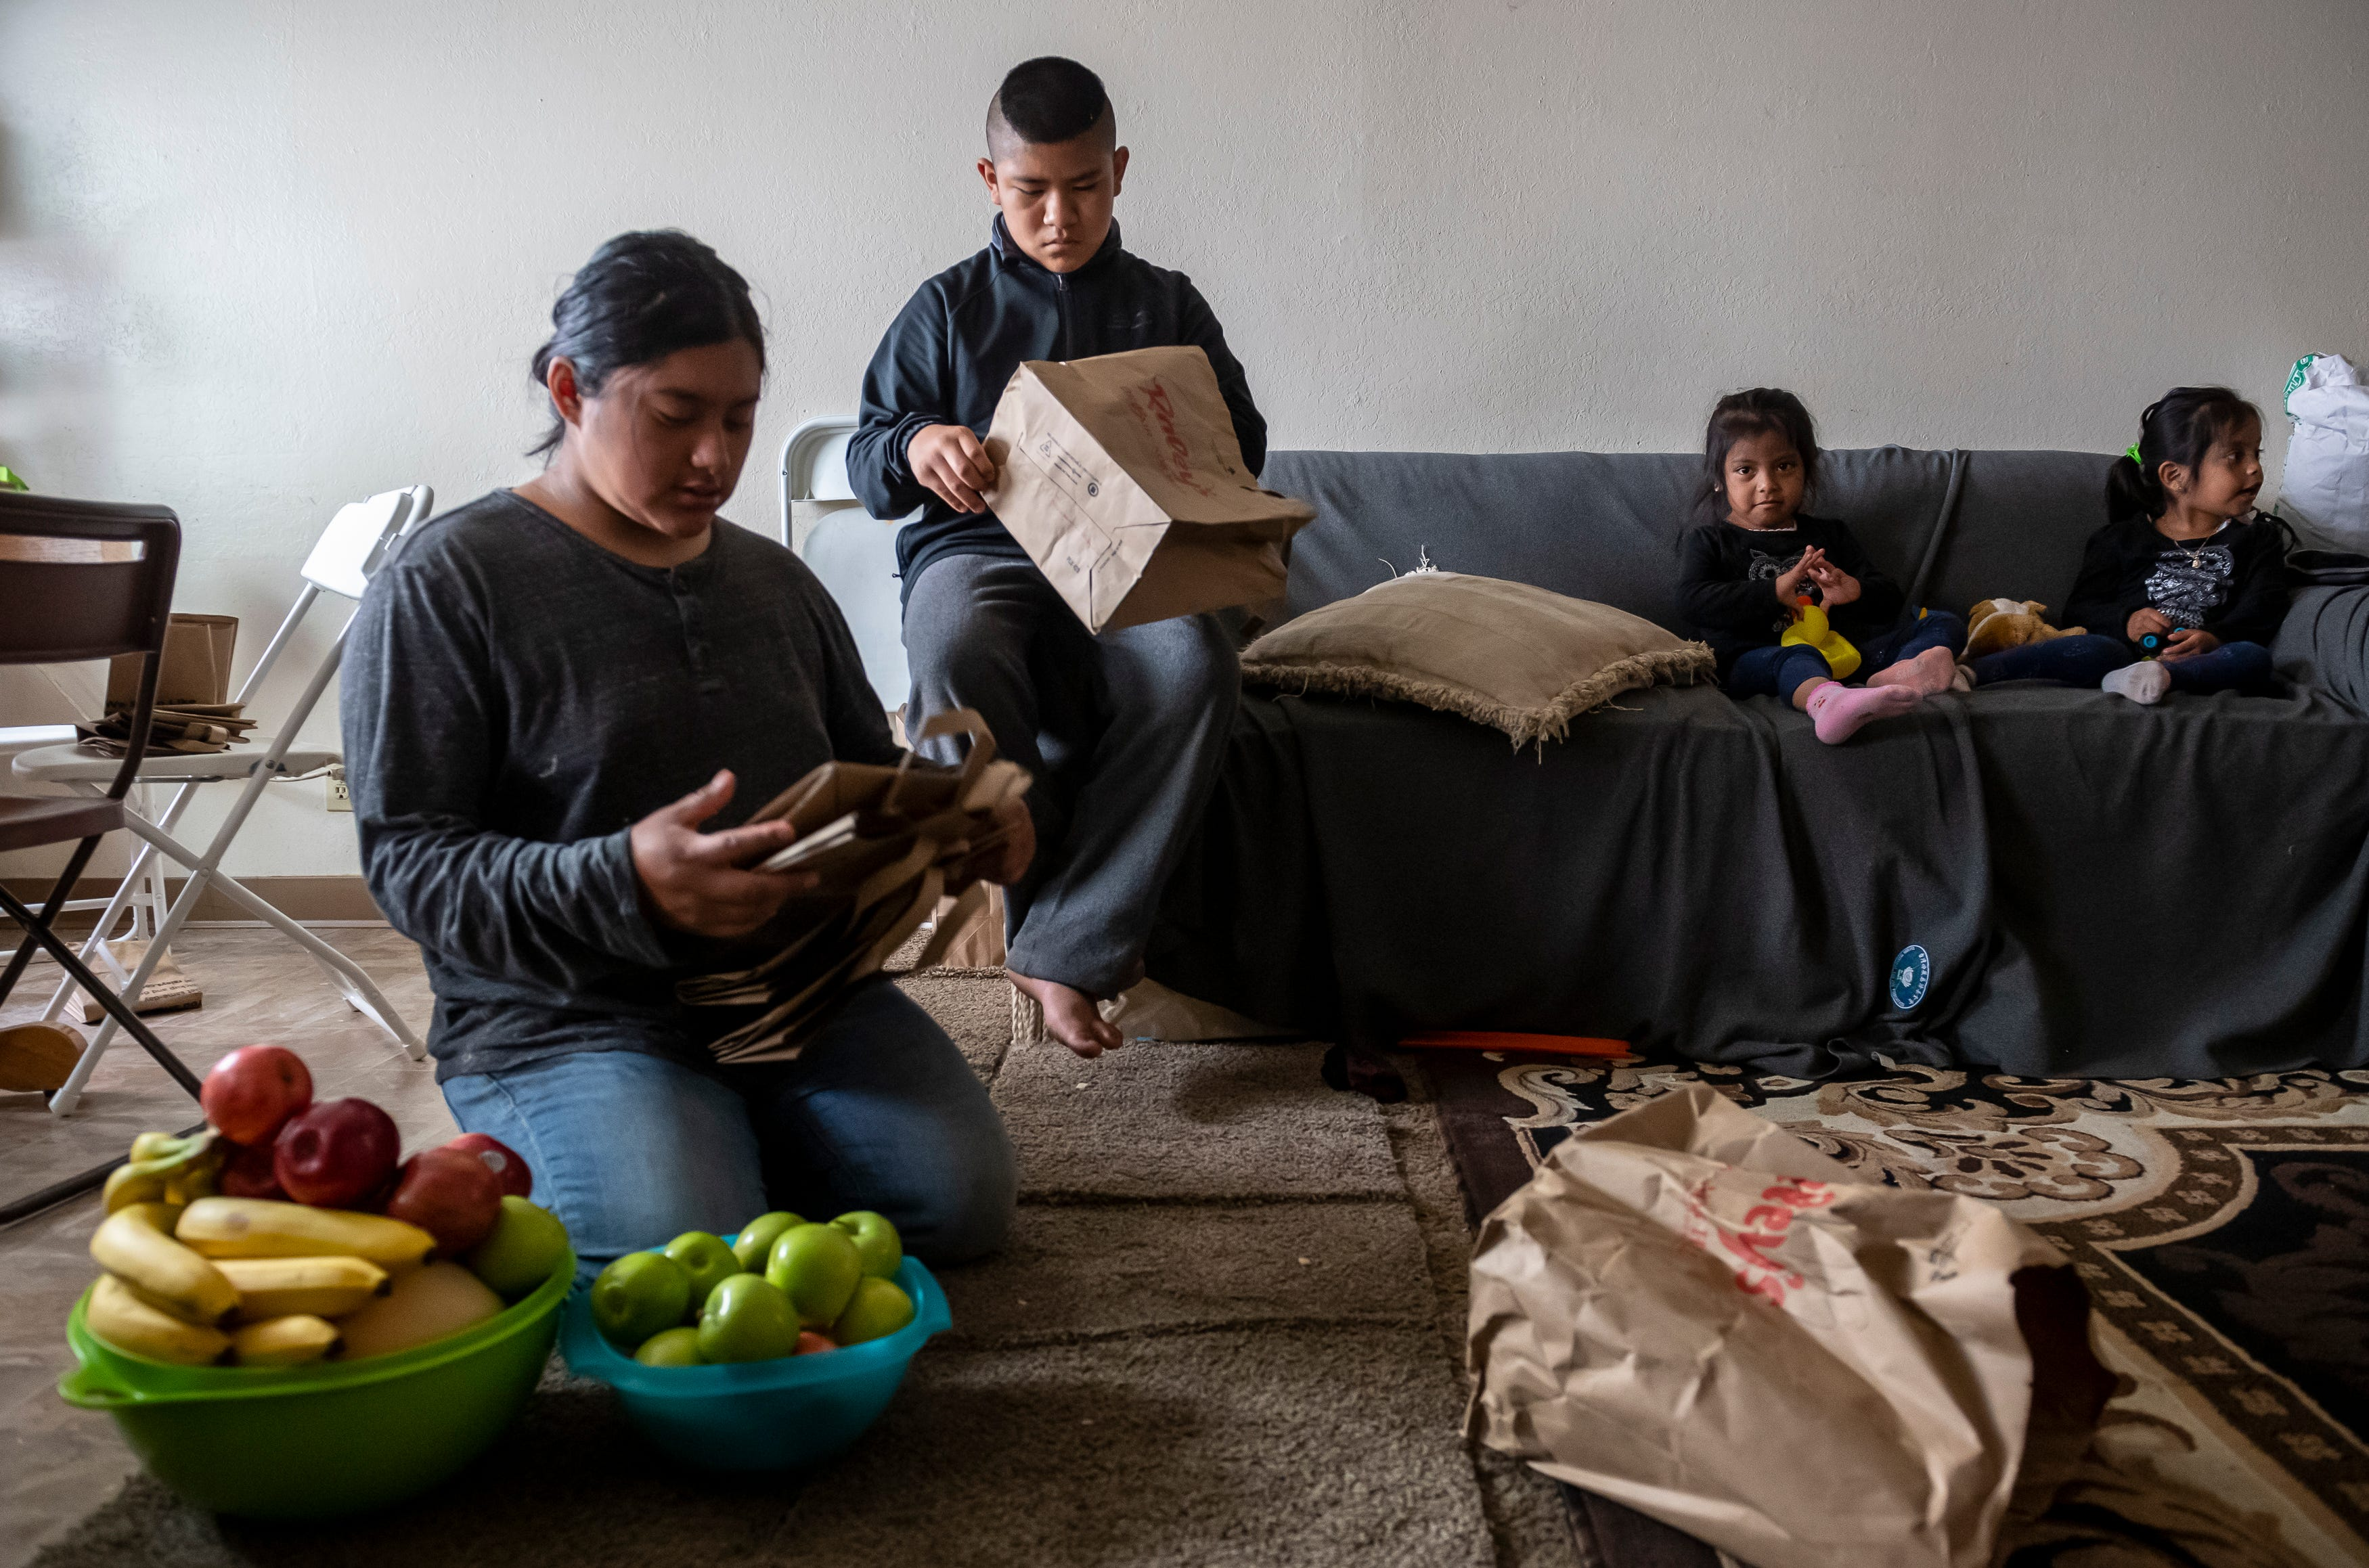 Resi Salvador, 20, left, folds paper grocery bags as her younger brother Aldo Salvador, 11, sits on the couch next to his cousins inside the family's two-bedroom apartment in north Salinas, Calif., on Saturday, July 18, 2020.